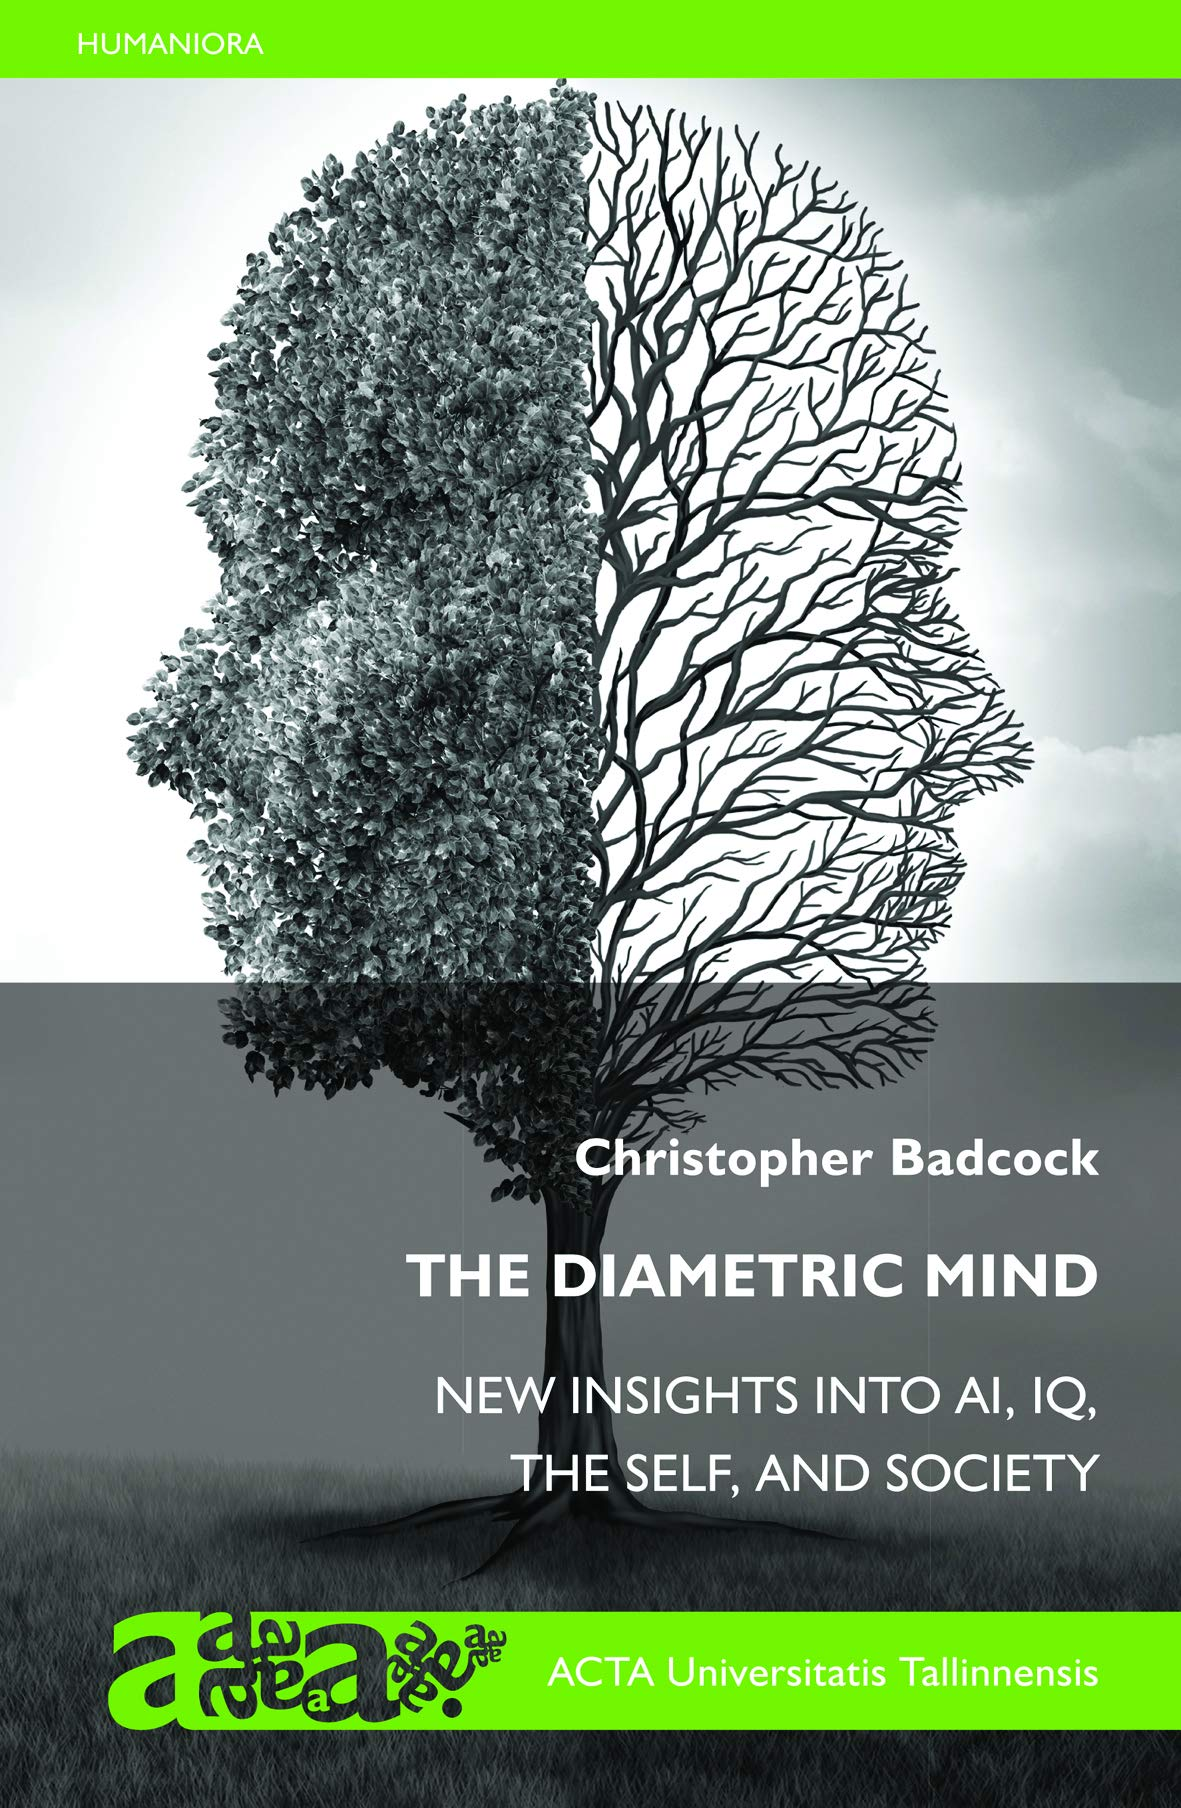 The Diametric Mind Insights into AI, IQ, the Self and Society: a sequel to The Imprinted Brain by A Days Tech